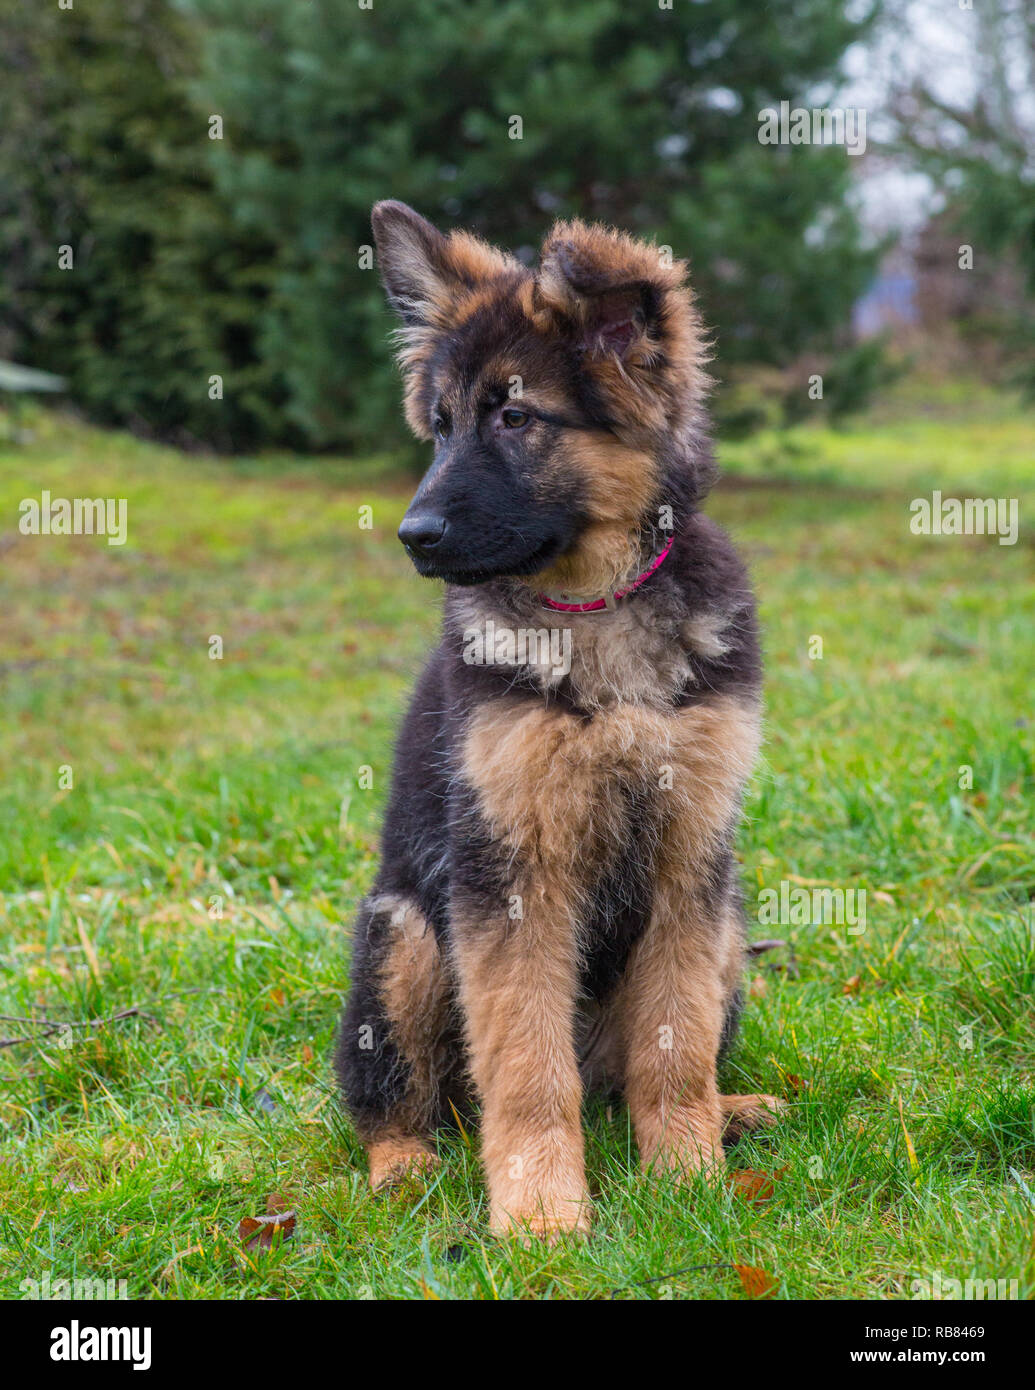 German Shepherd Puppy Cute High Resolution Stock Photography And Images Alamy